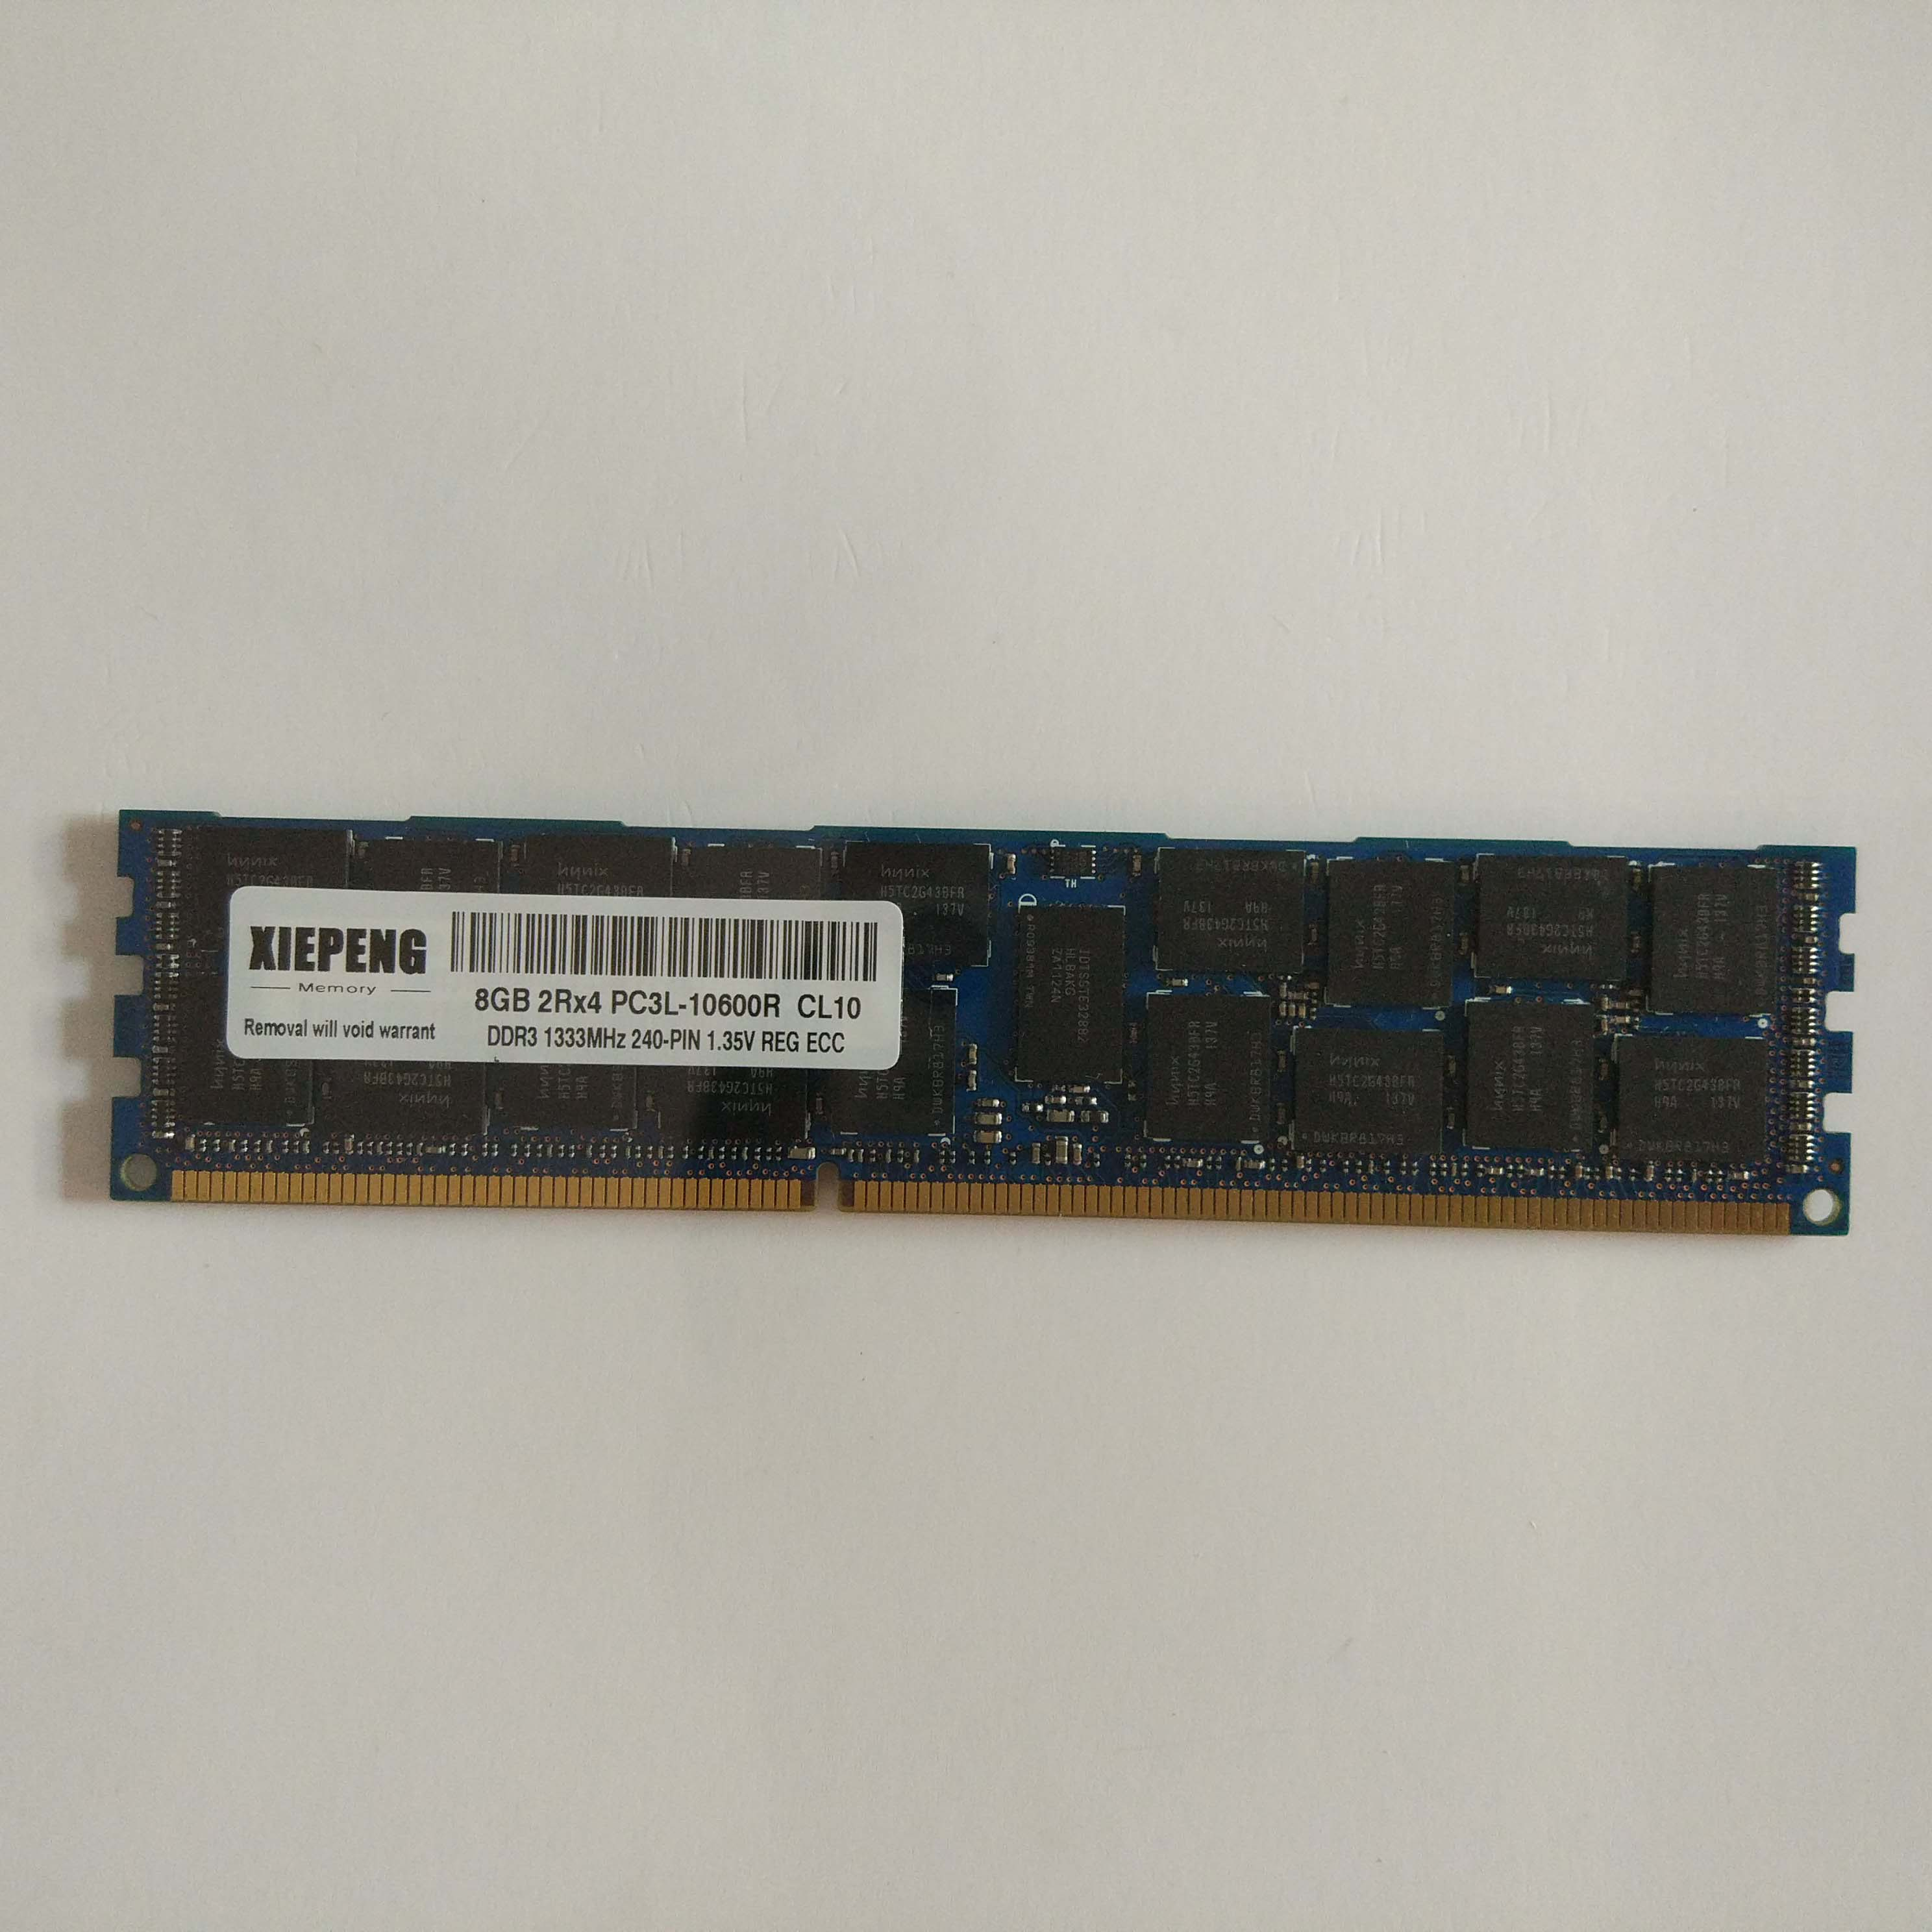 New Hynix 1x 8GB 2Rx4 DIMM DDR3 1333 MHz PC3-10600R CL9 ECC Registered RDIMM REG